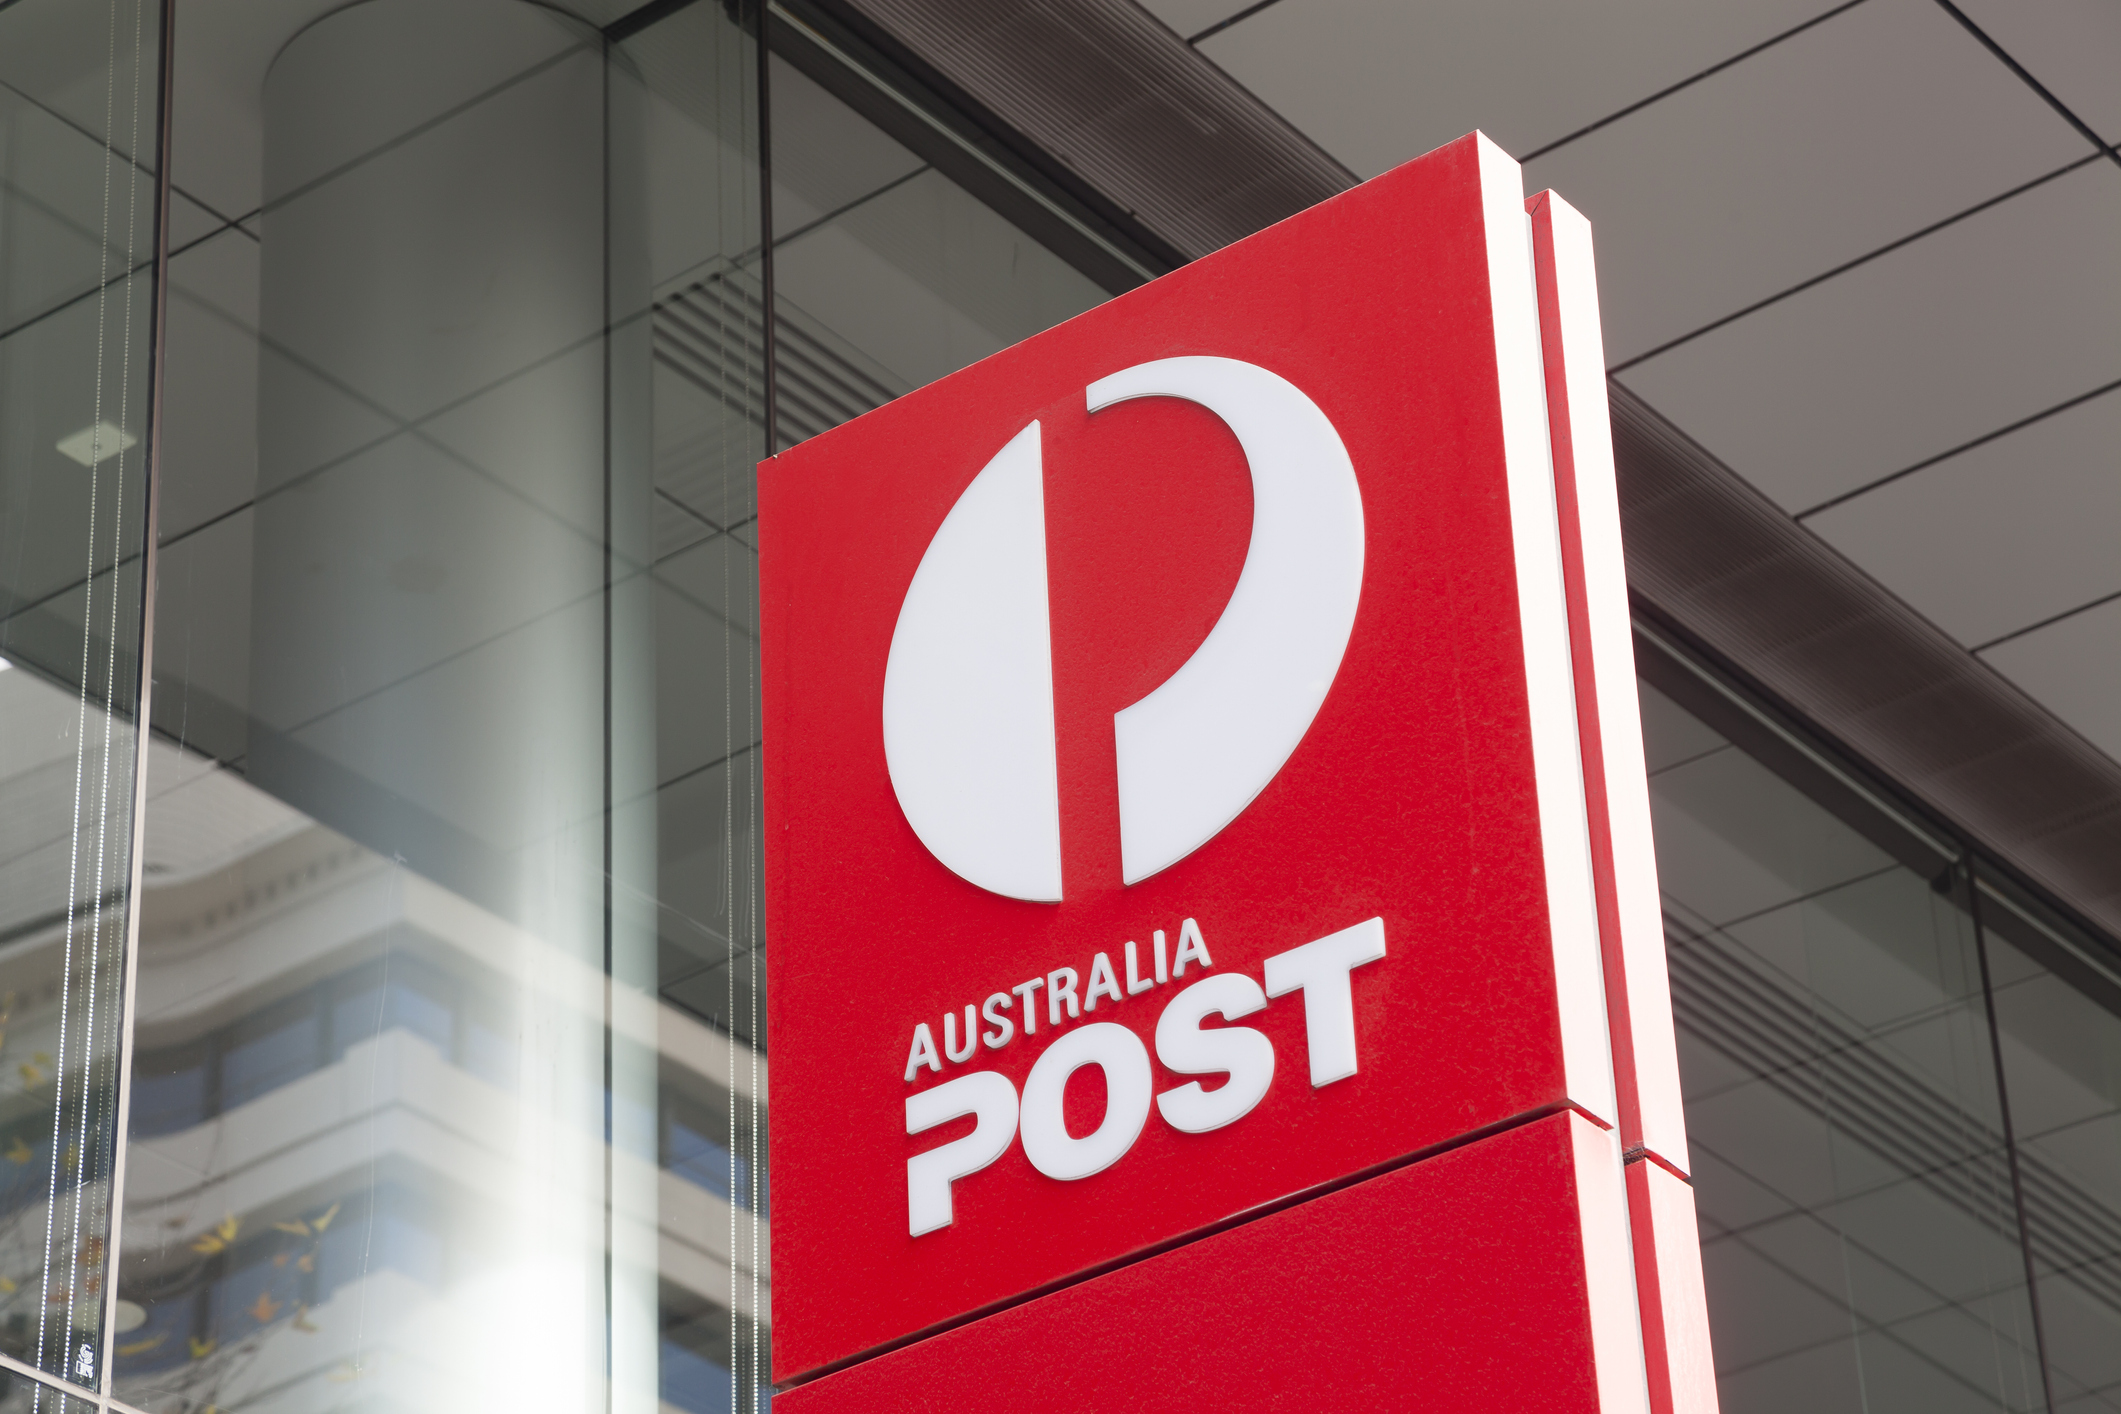 Australia Post spending more than halved under CEO Christine Holgate